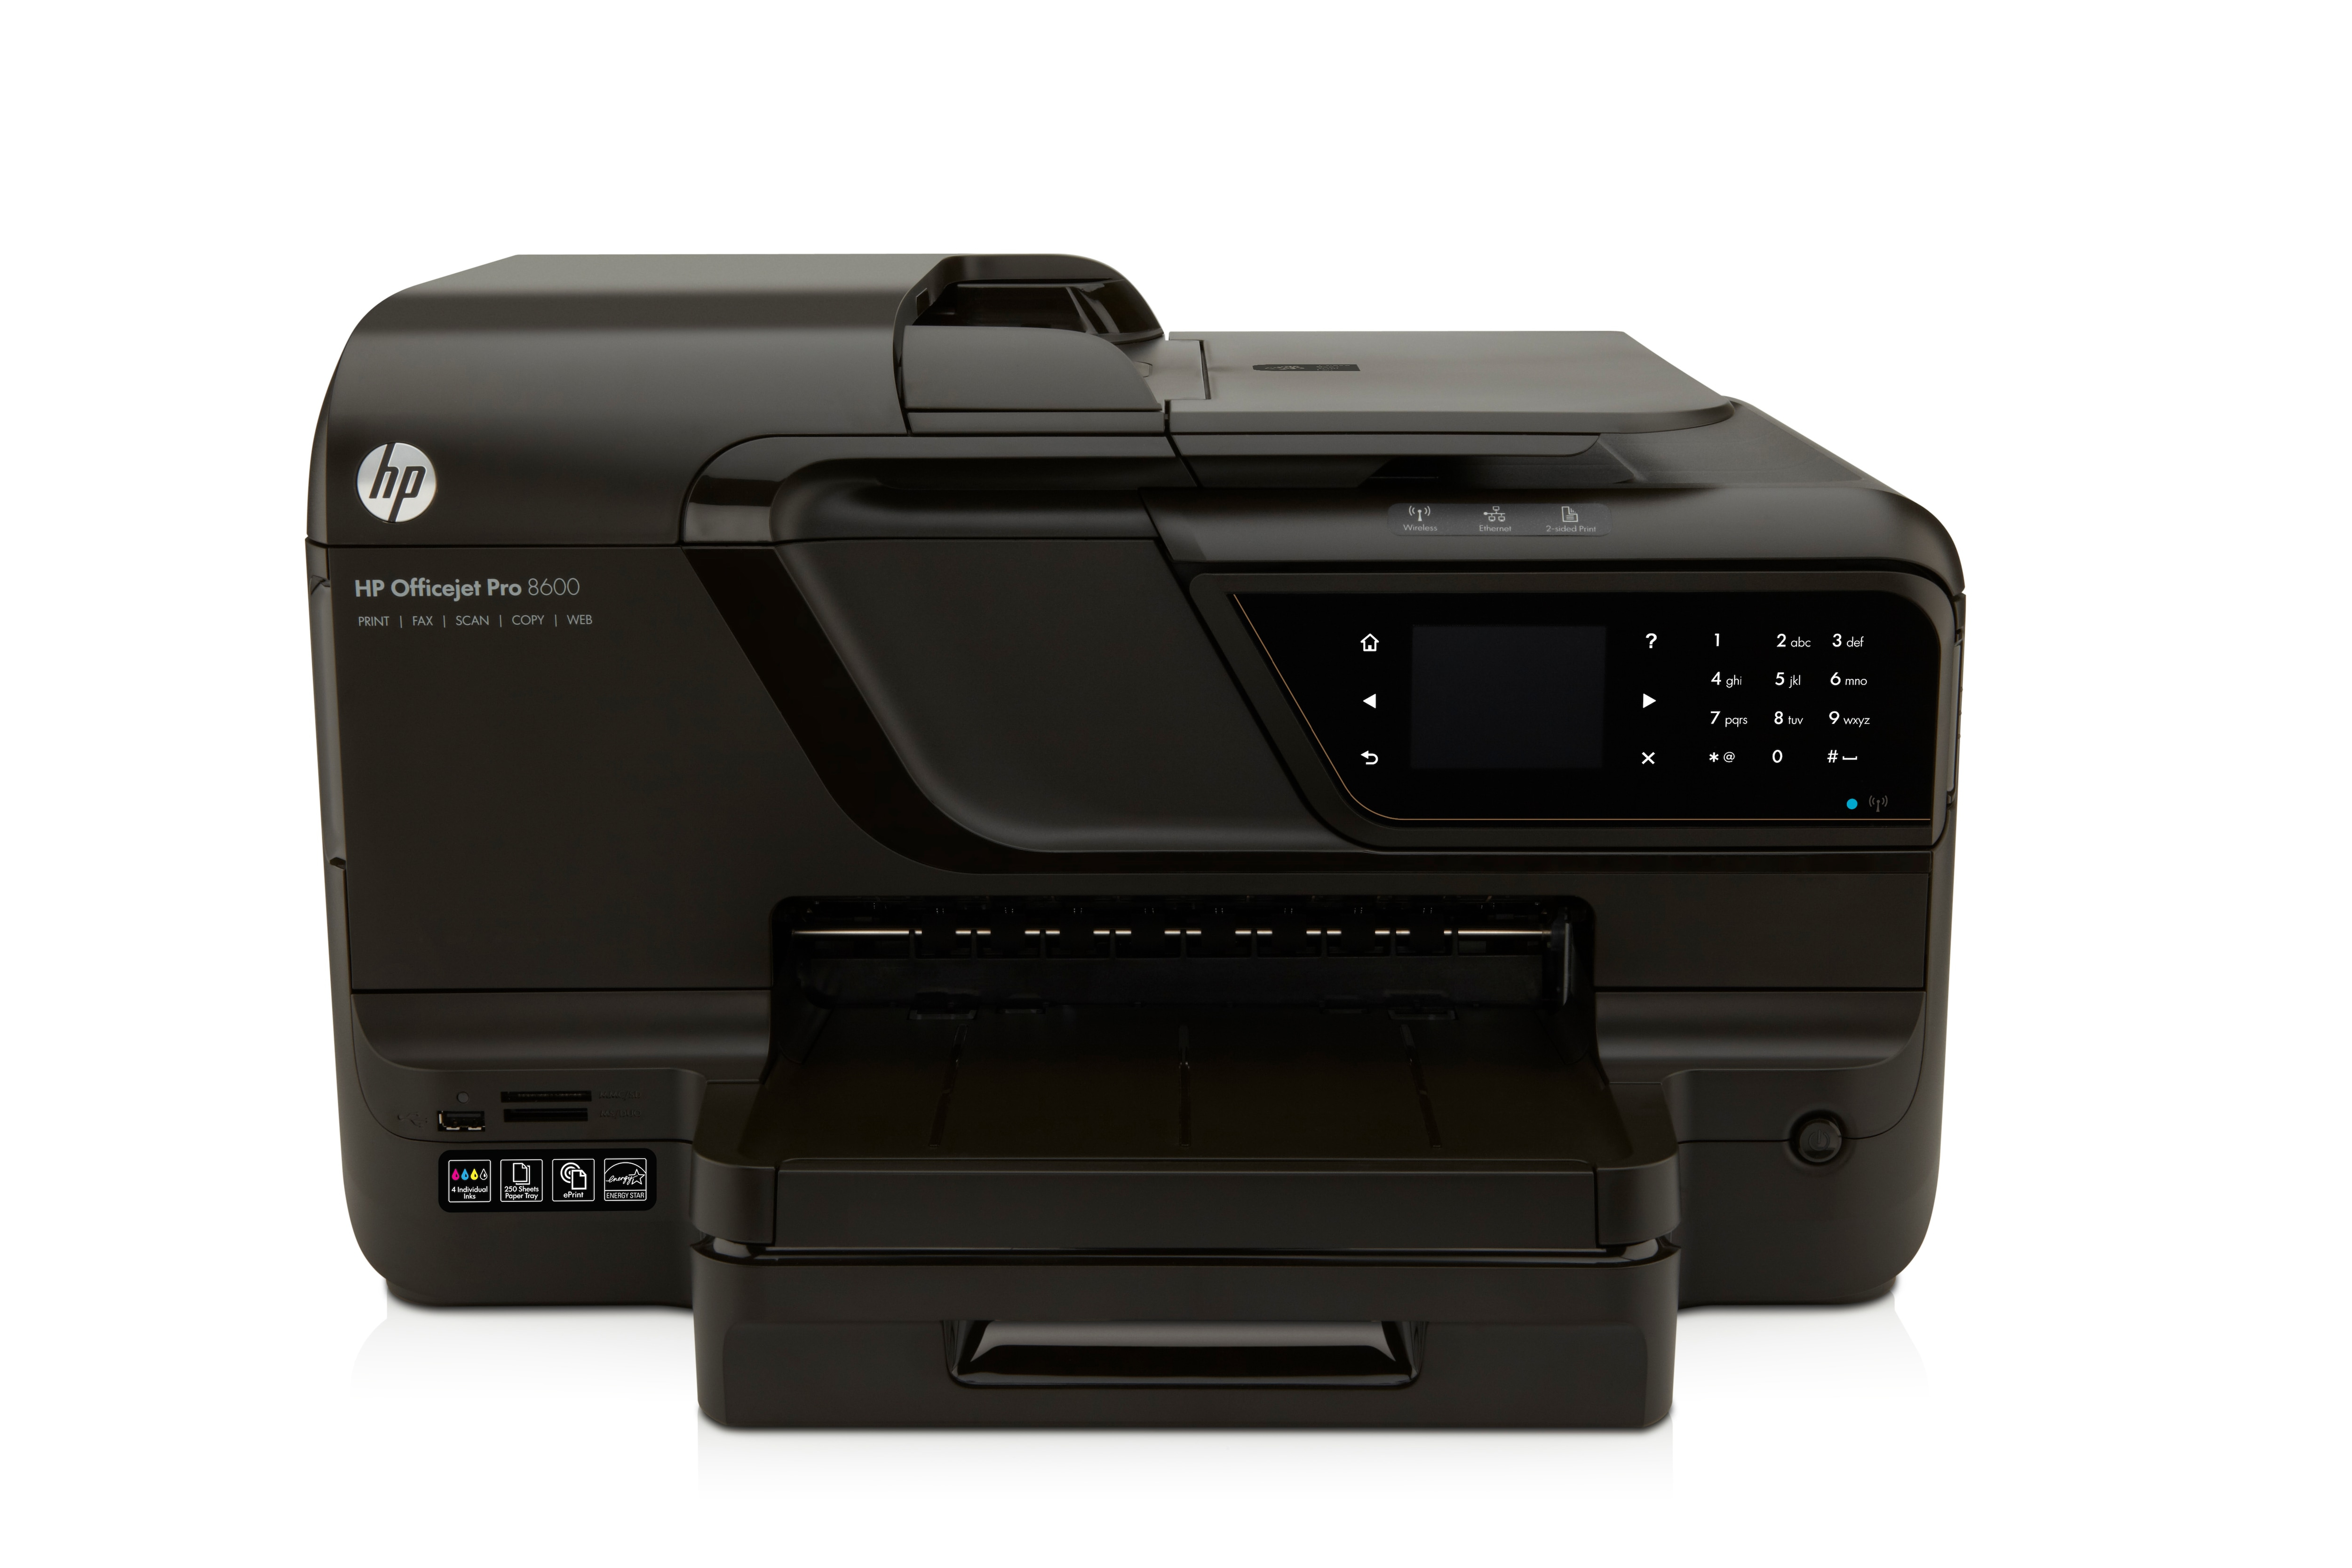 CM749A HP OfficeJet Pro 8600 e-All-in-One (Print, Scan, Copy, Fax, Web) Printer - Refurbished